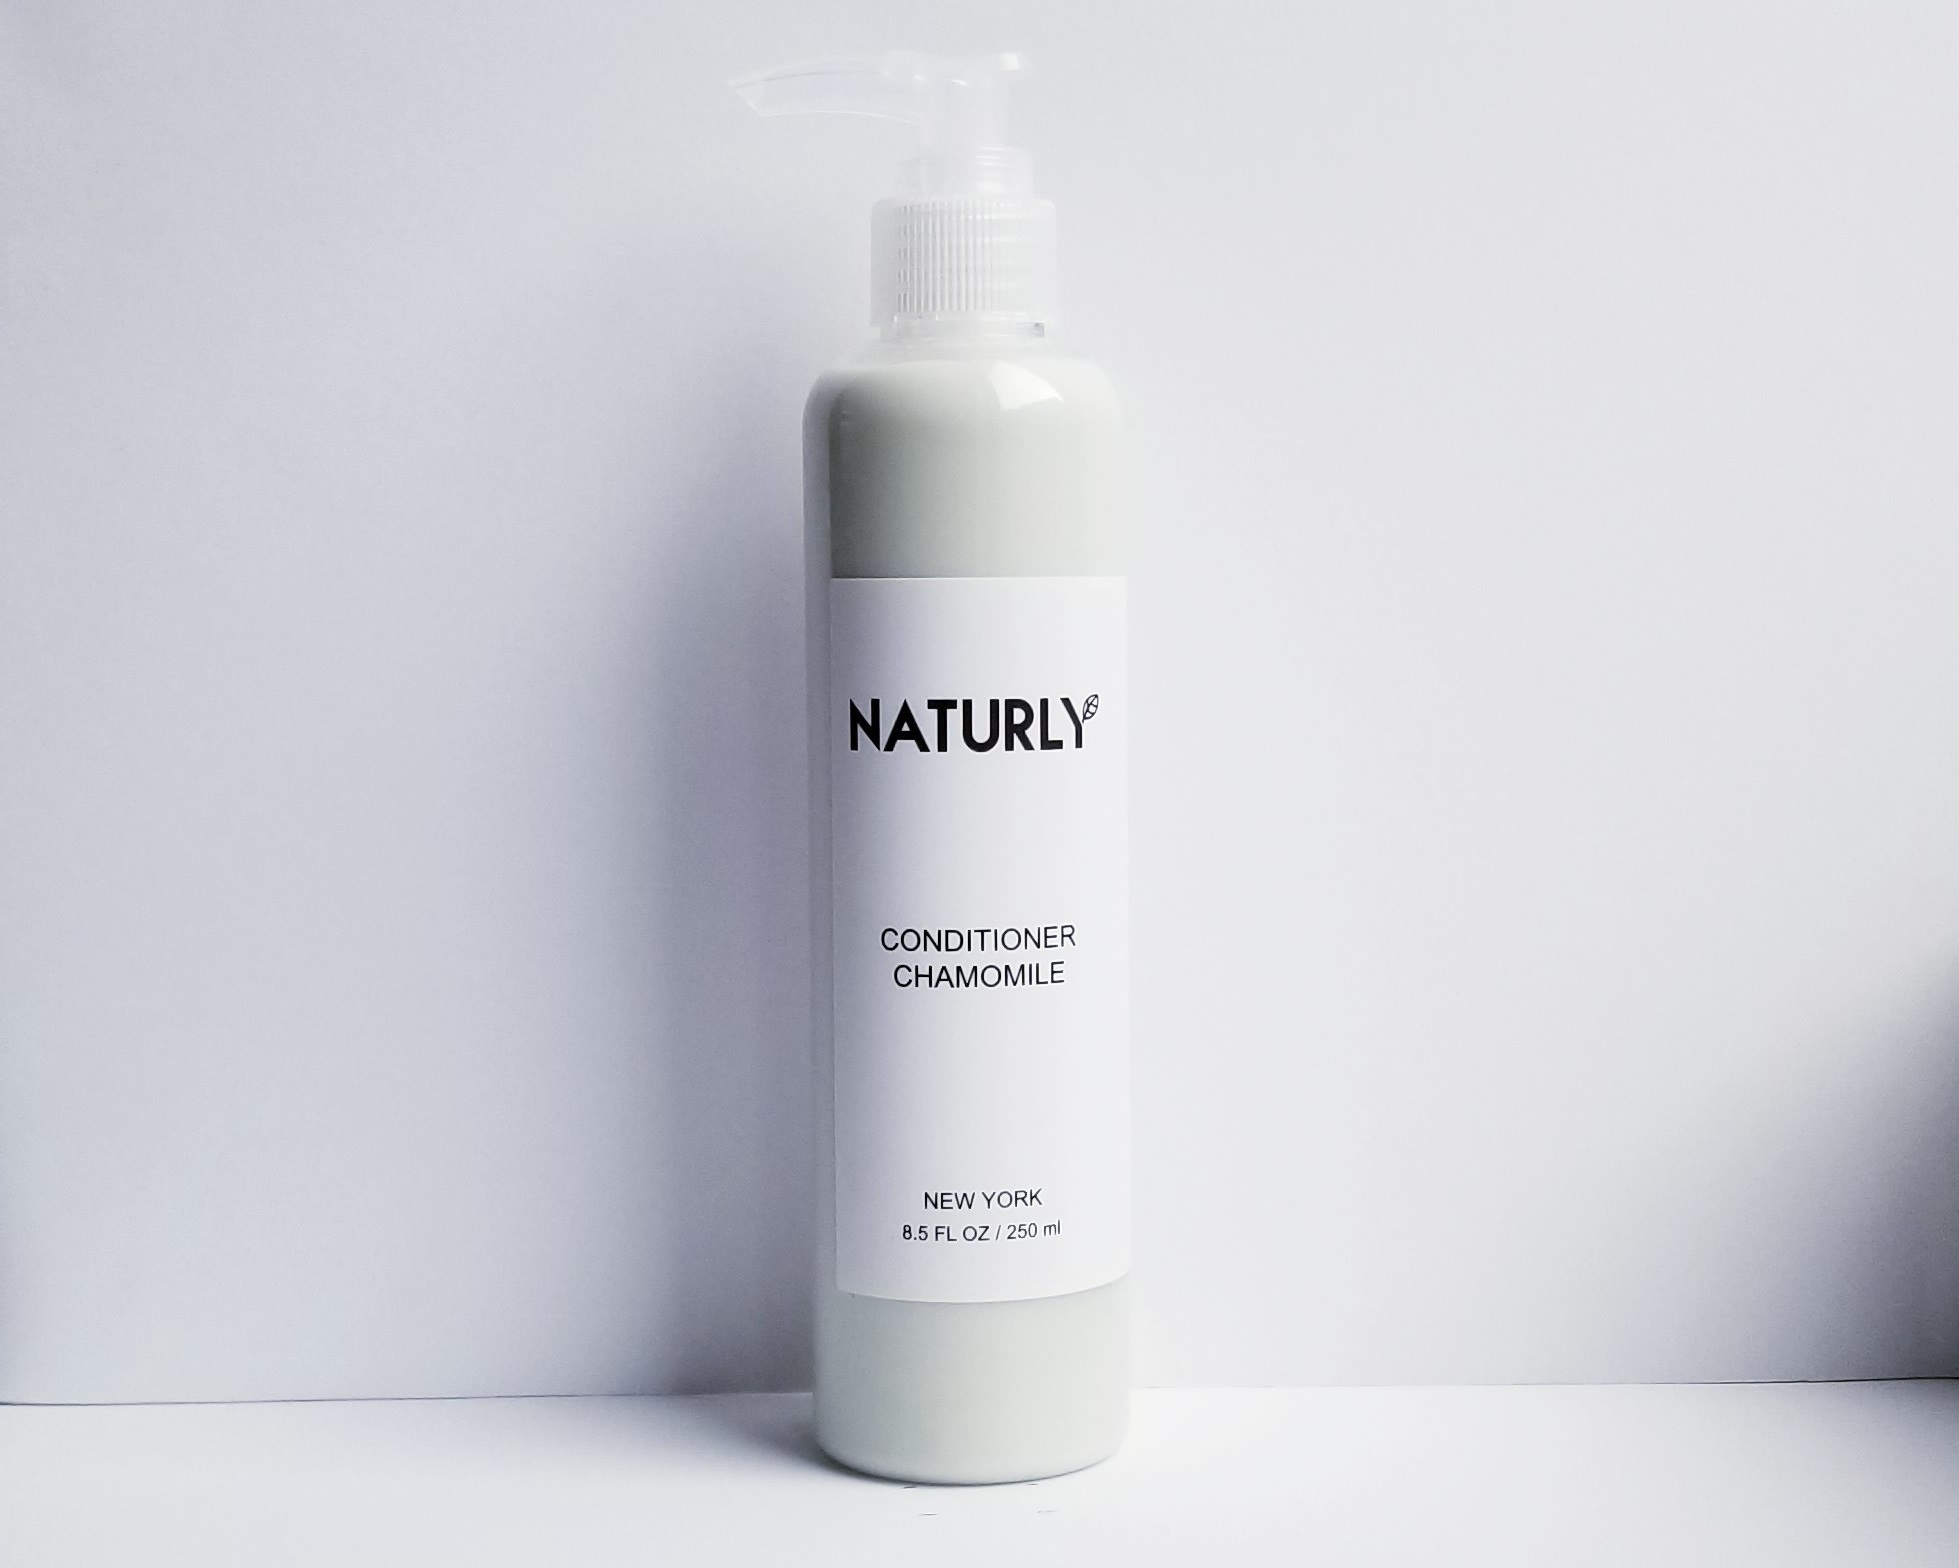 Conditioner with coconut emollient, chamomile & lavendar oils, anti-oxidant chlorophyl extract - $24